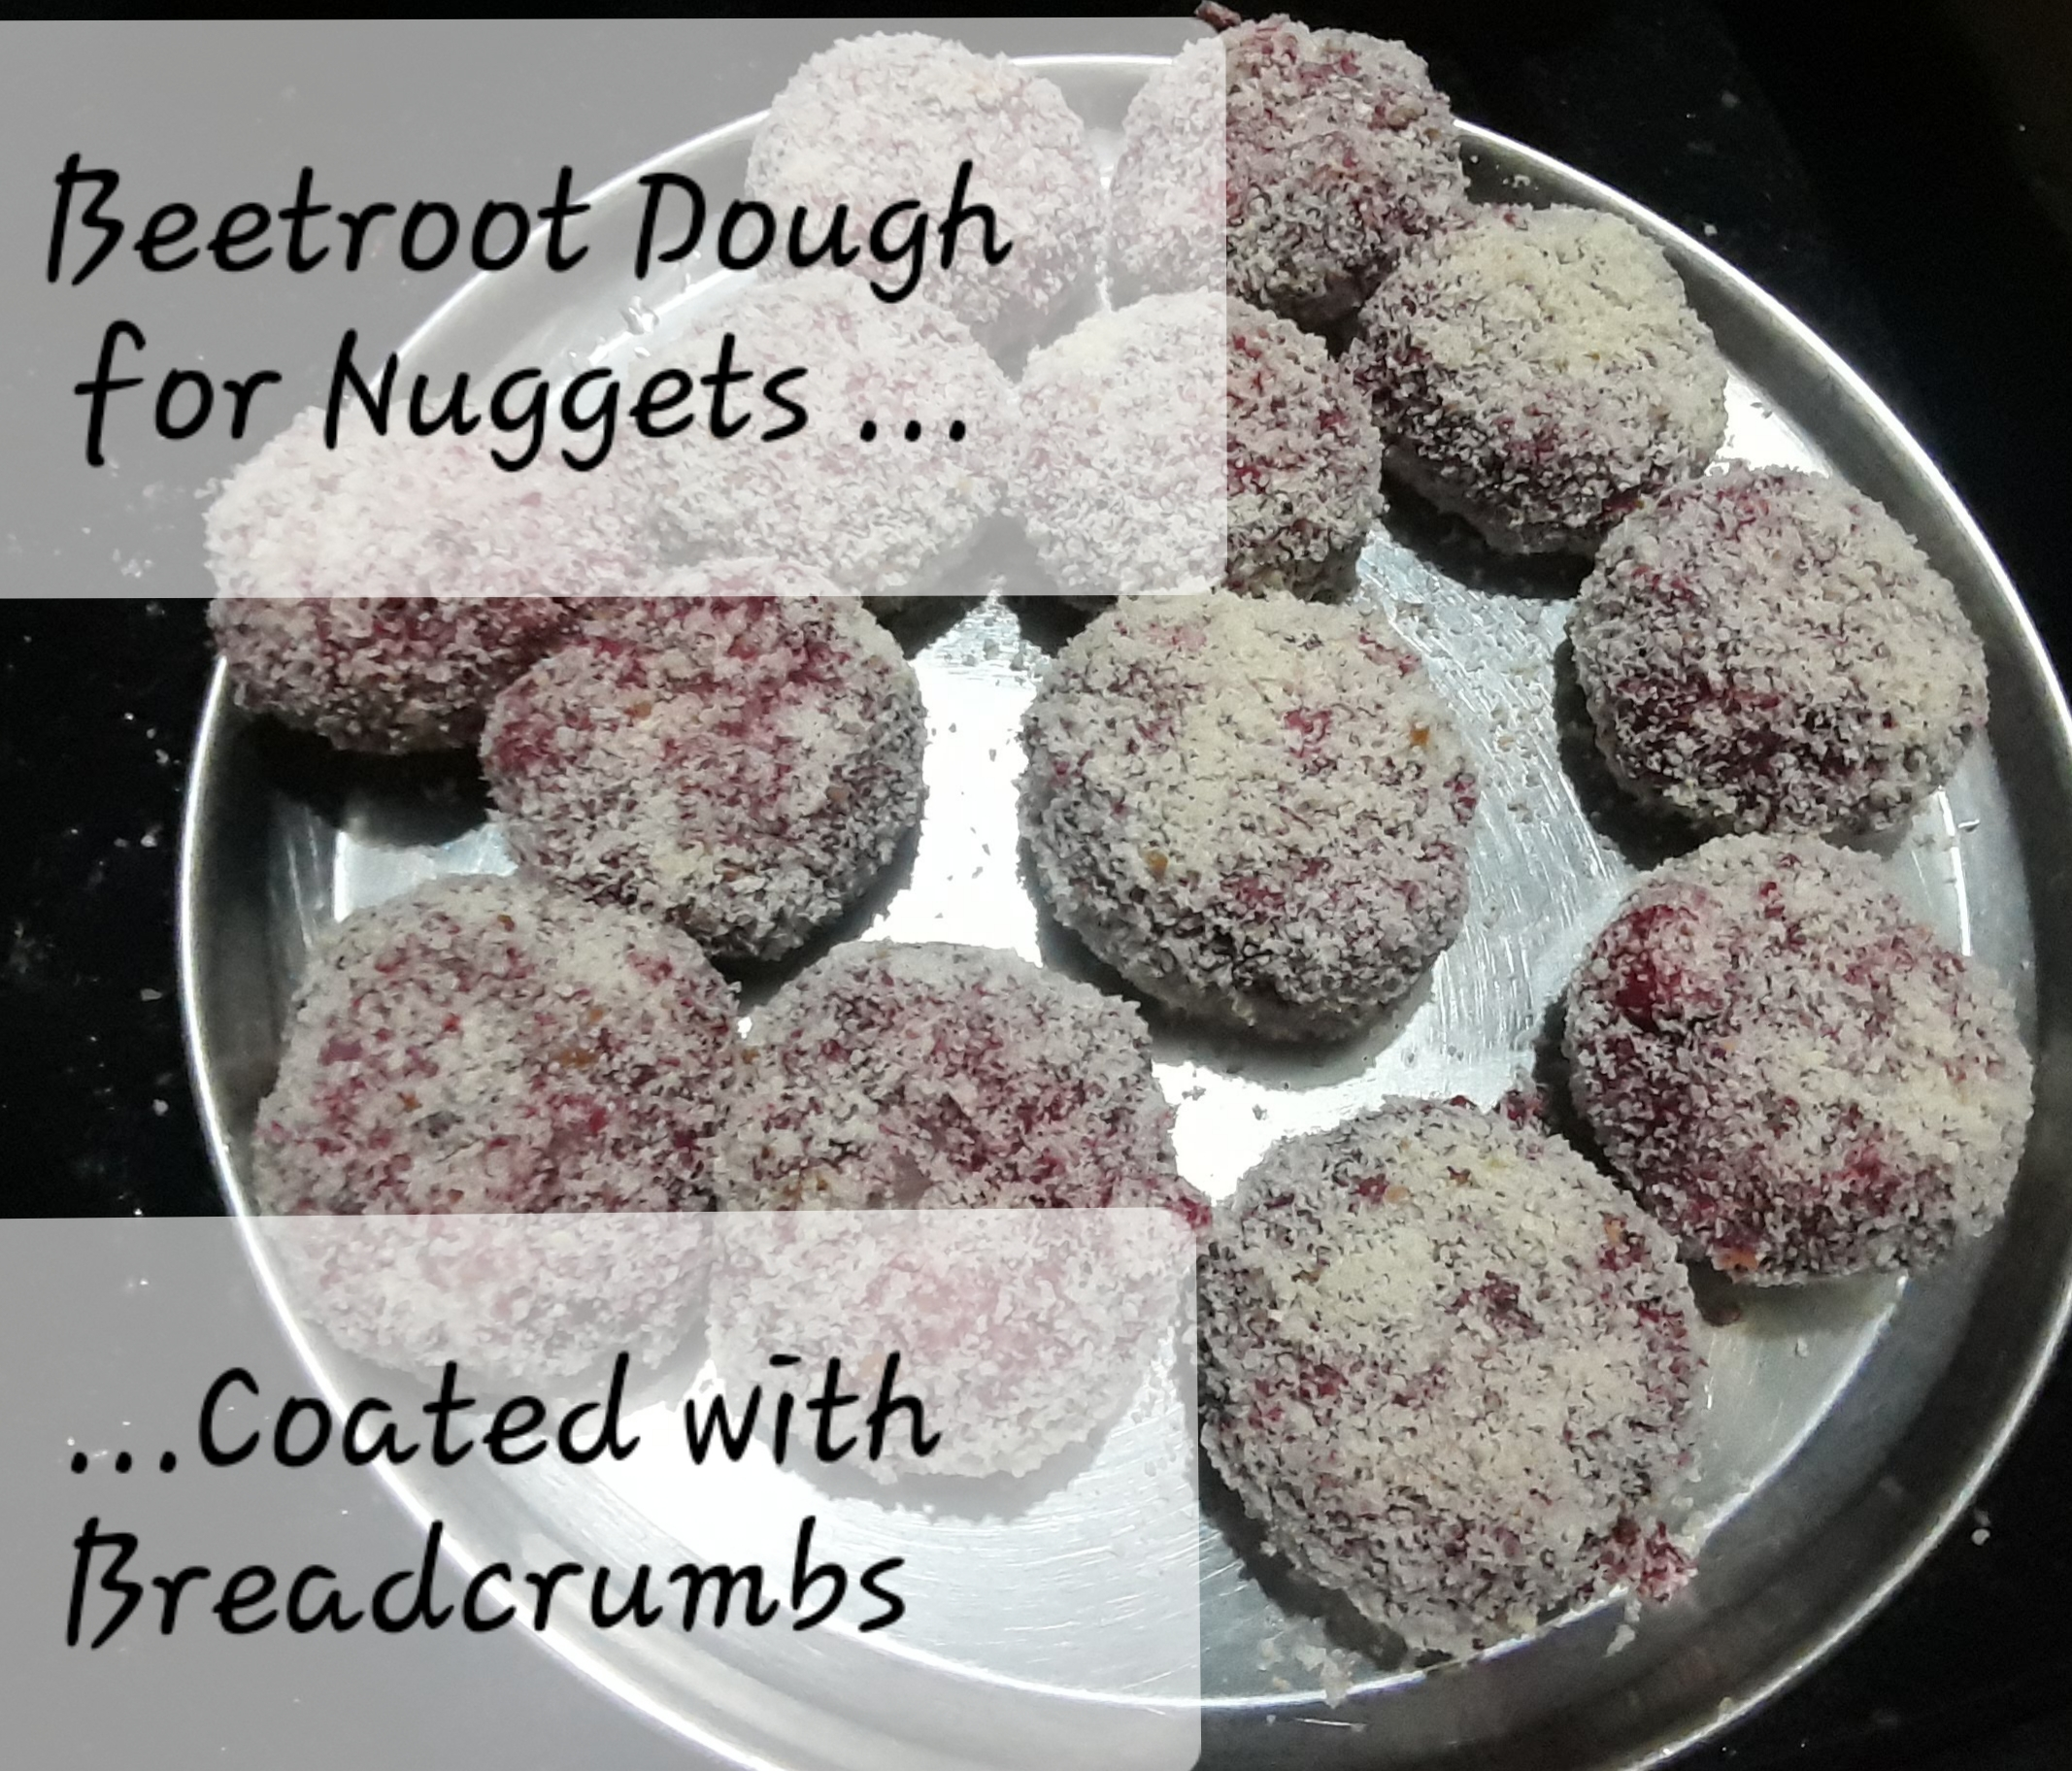 Beetroot Nuggets Coated with Breadcrumbs